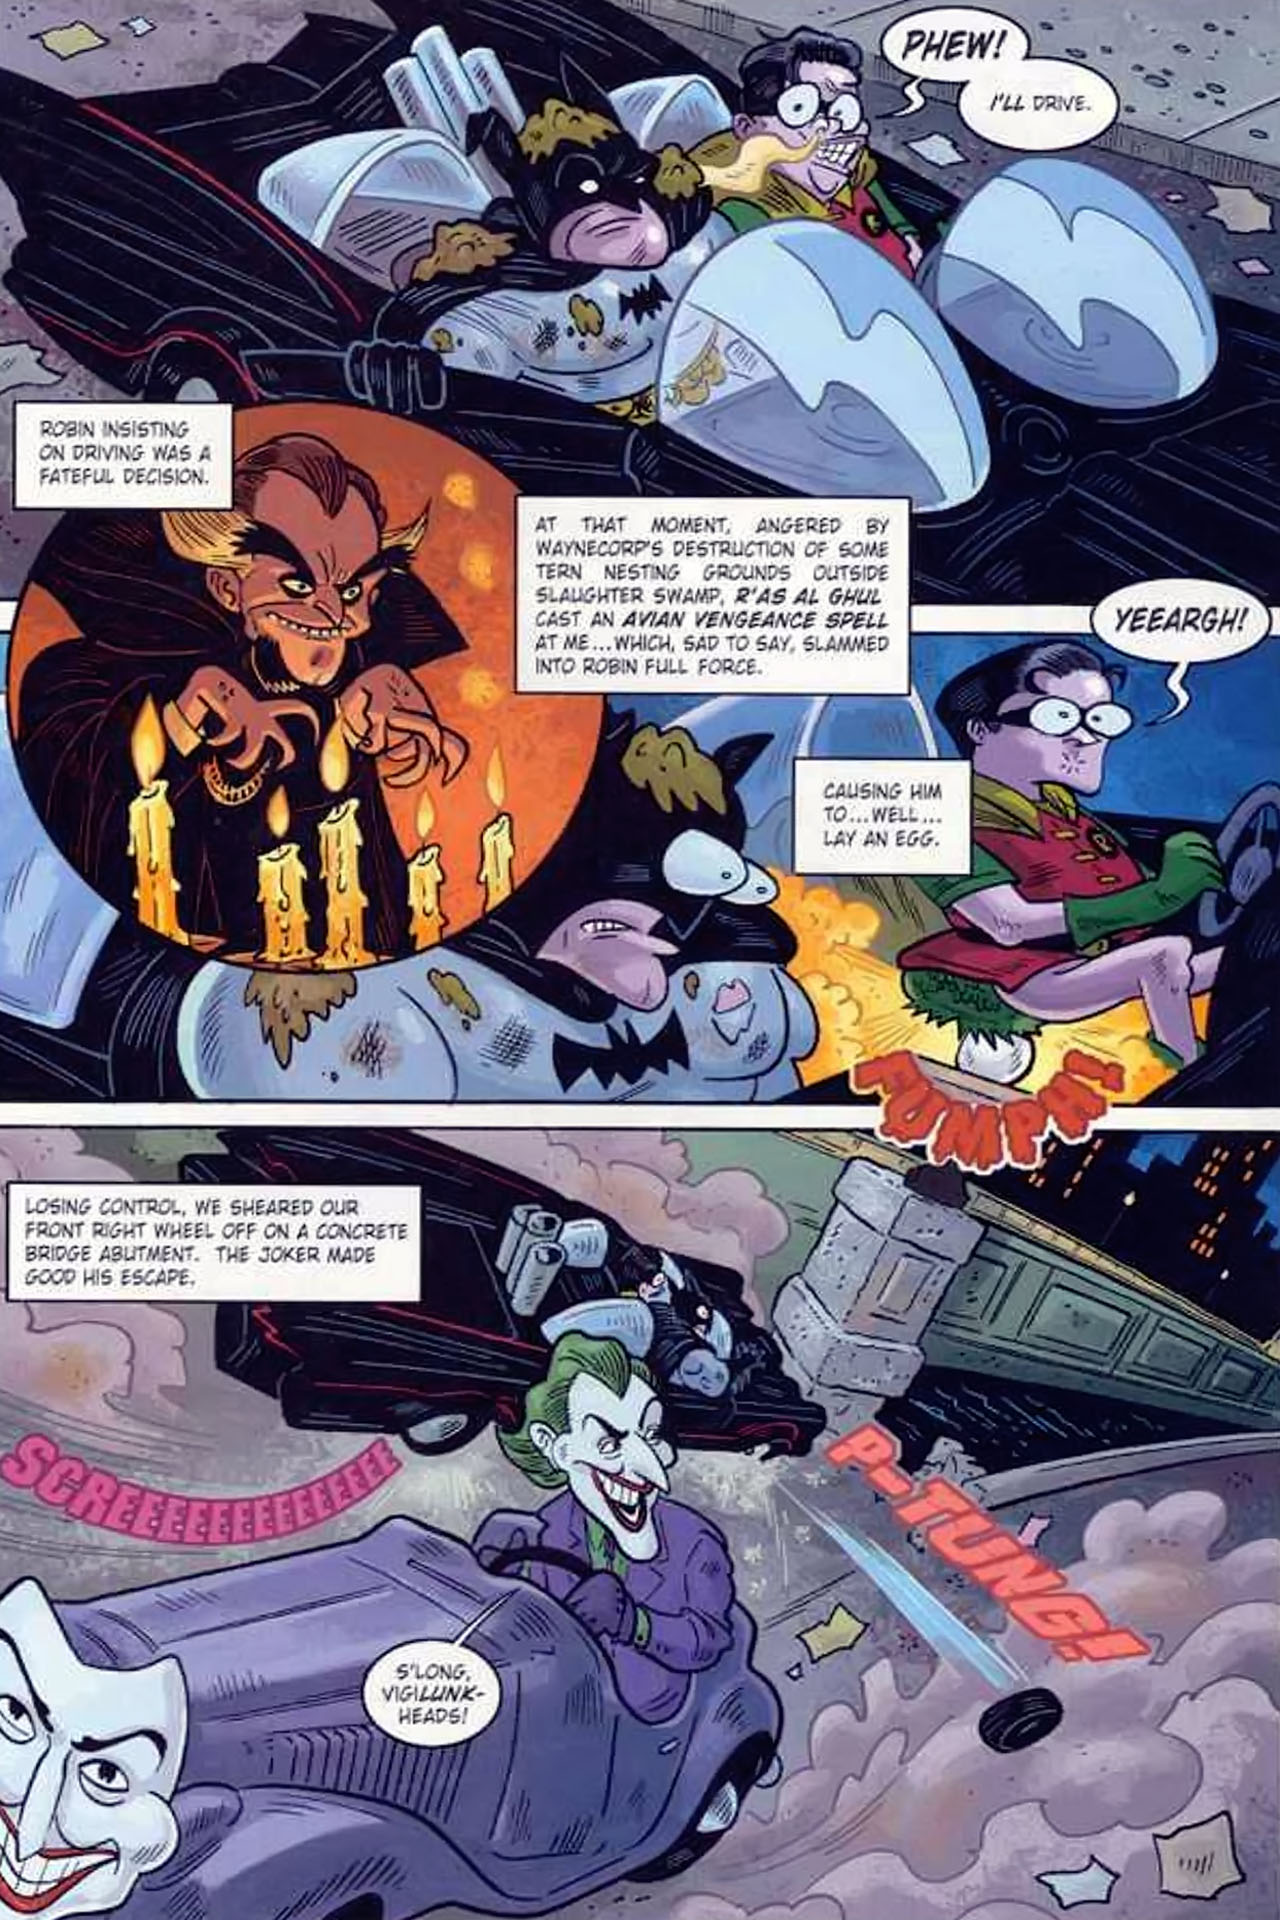 Read online Bizarro World comic -  Issue # TPB - 43